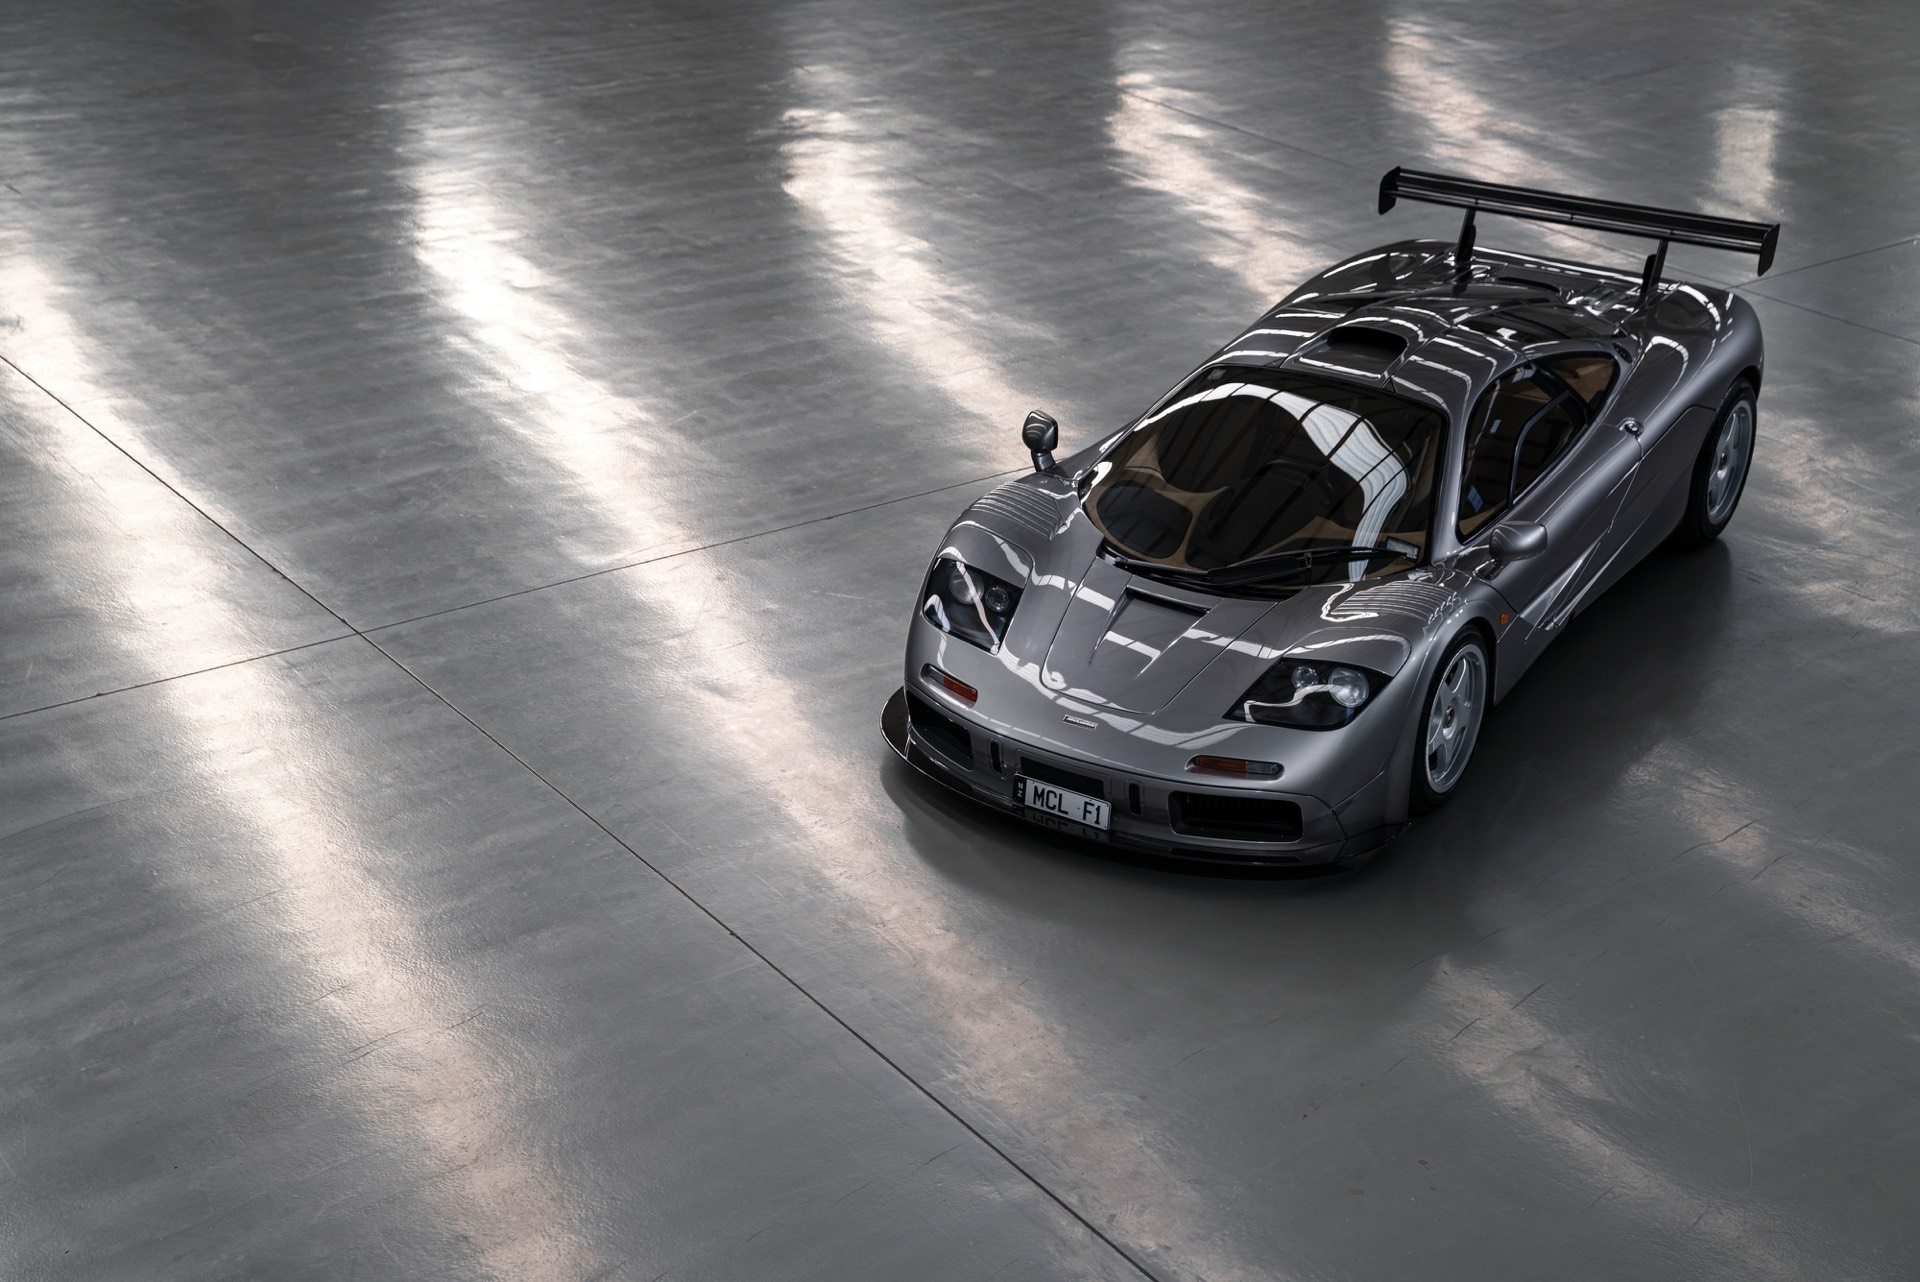 RM Sotheby's List McLaren F1 'LM-Specification' For Sale